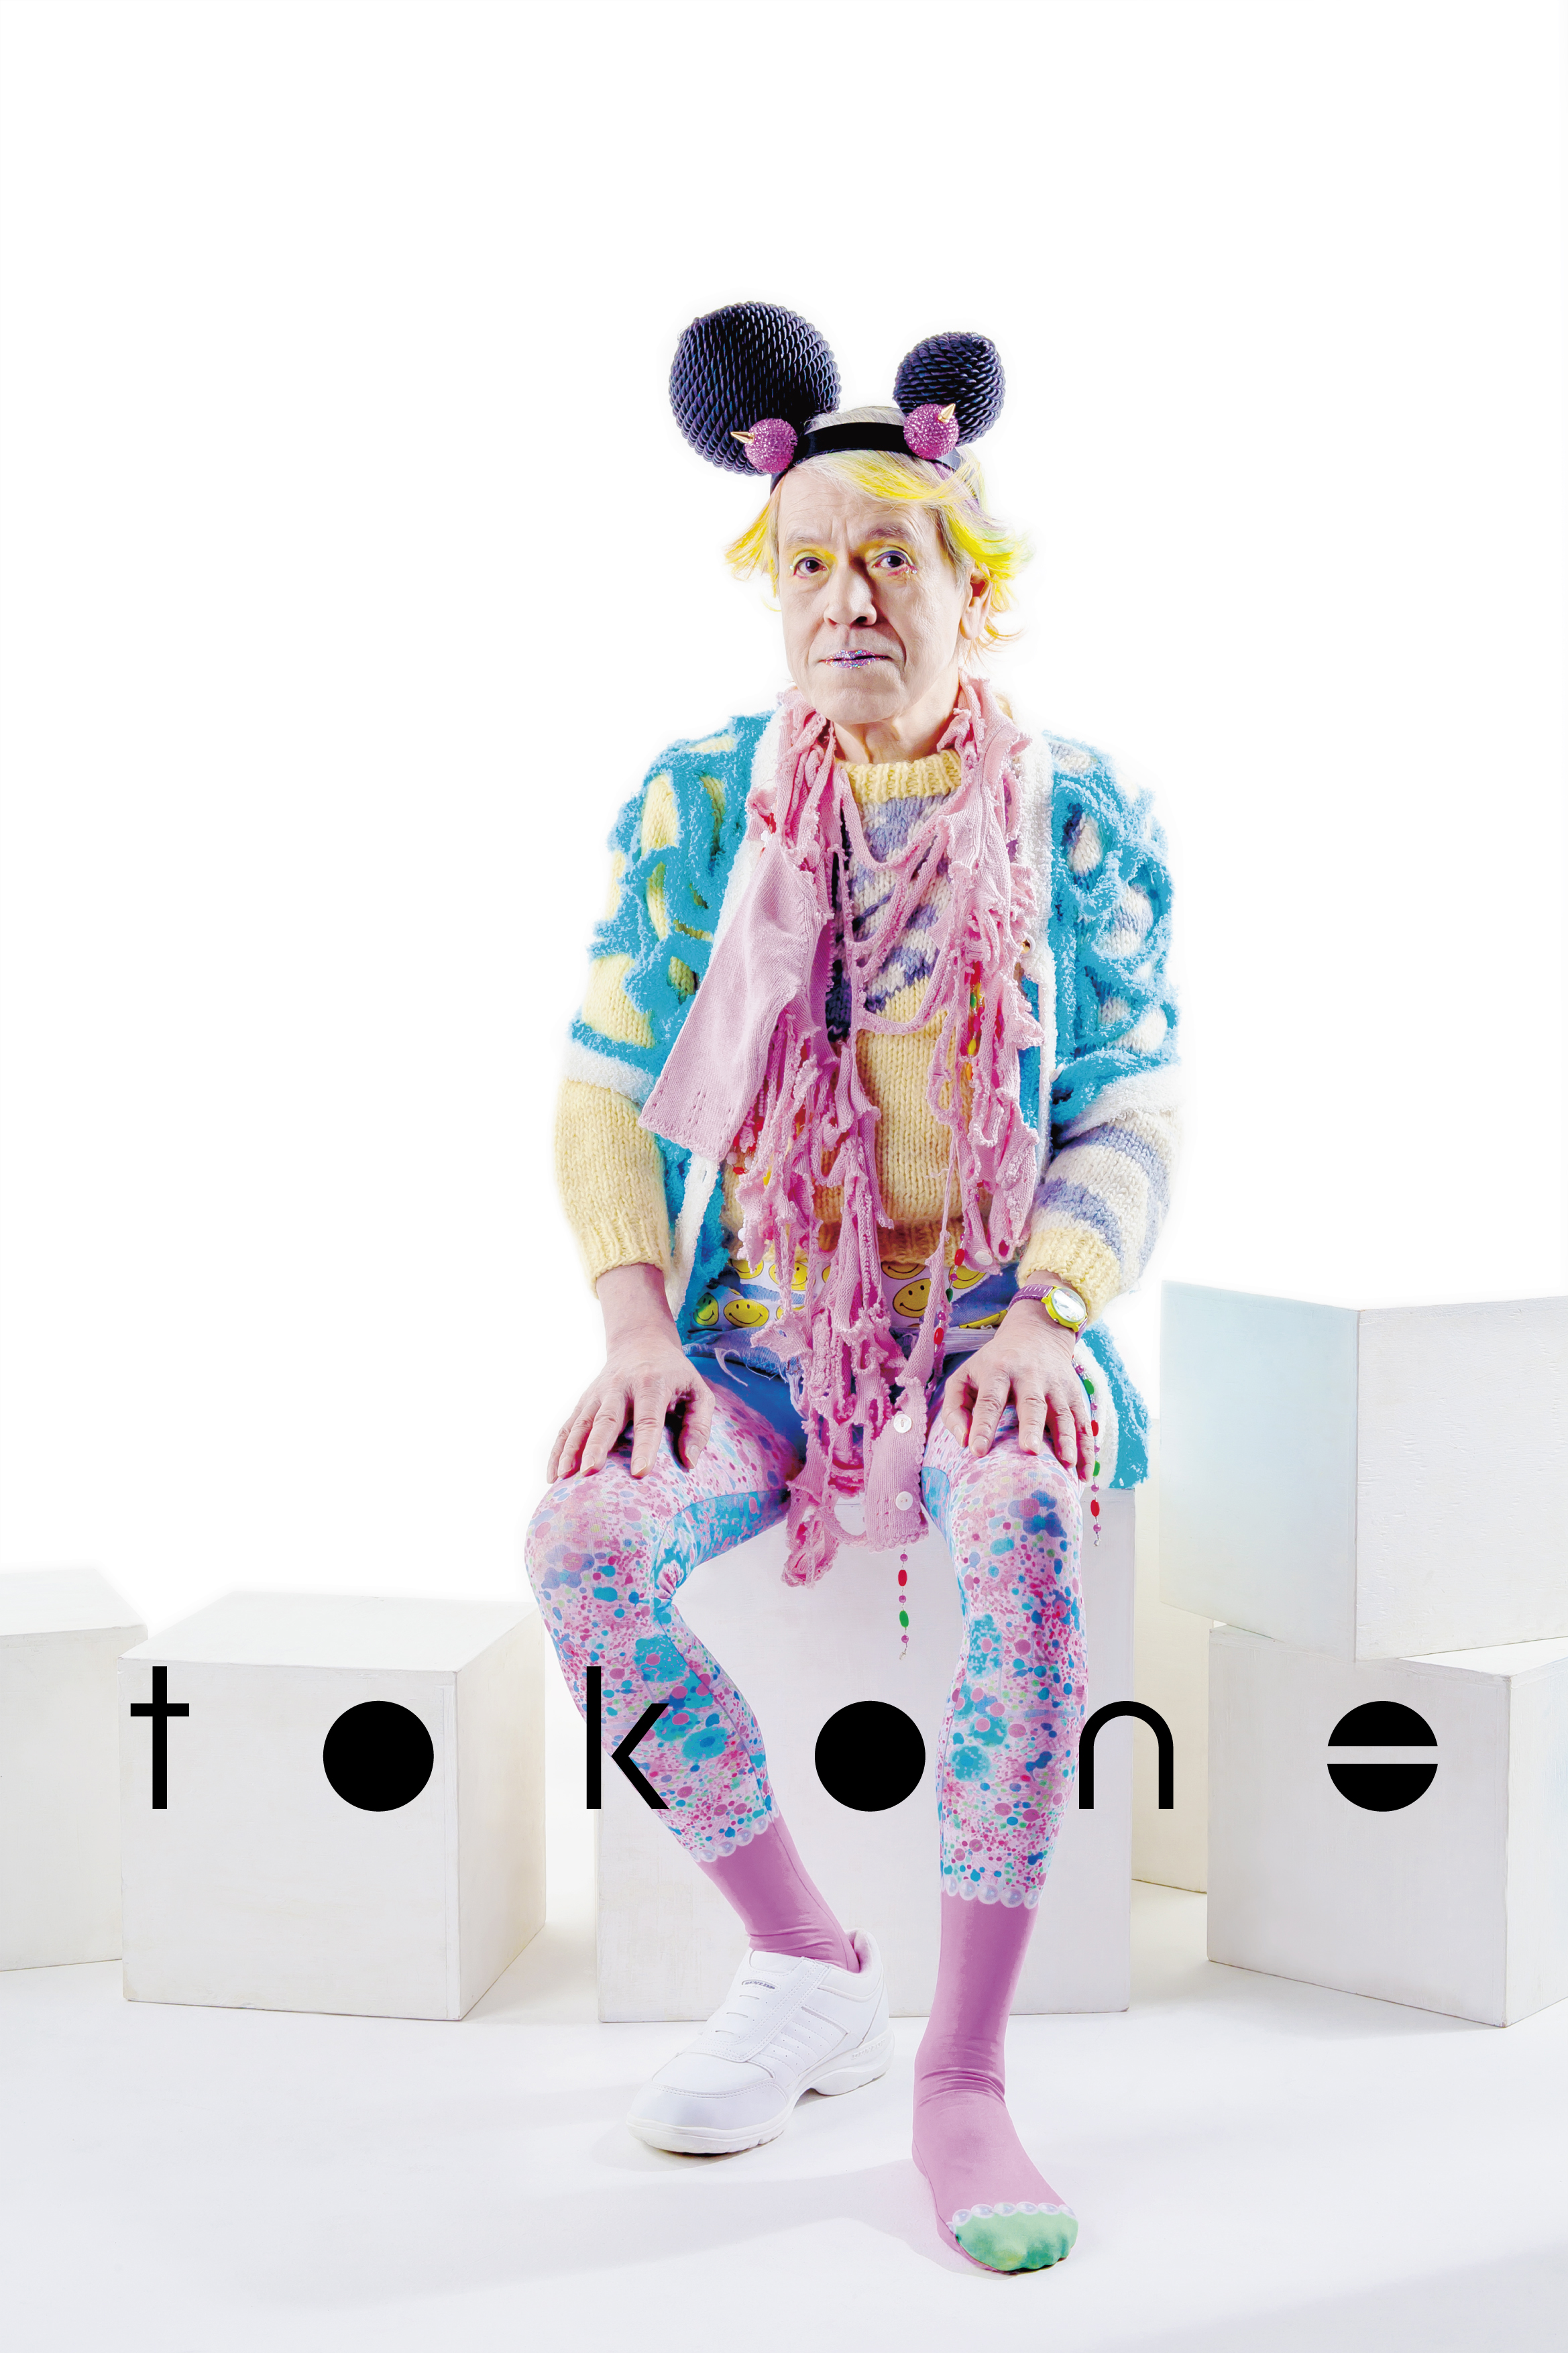 Styling tokyo 39 s legendary fashion icon you should know the androgynous prize winning author Japanese fashion style icon